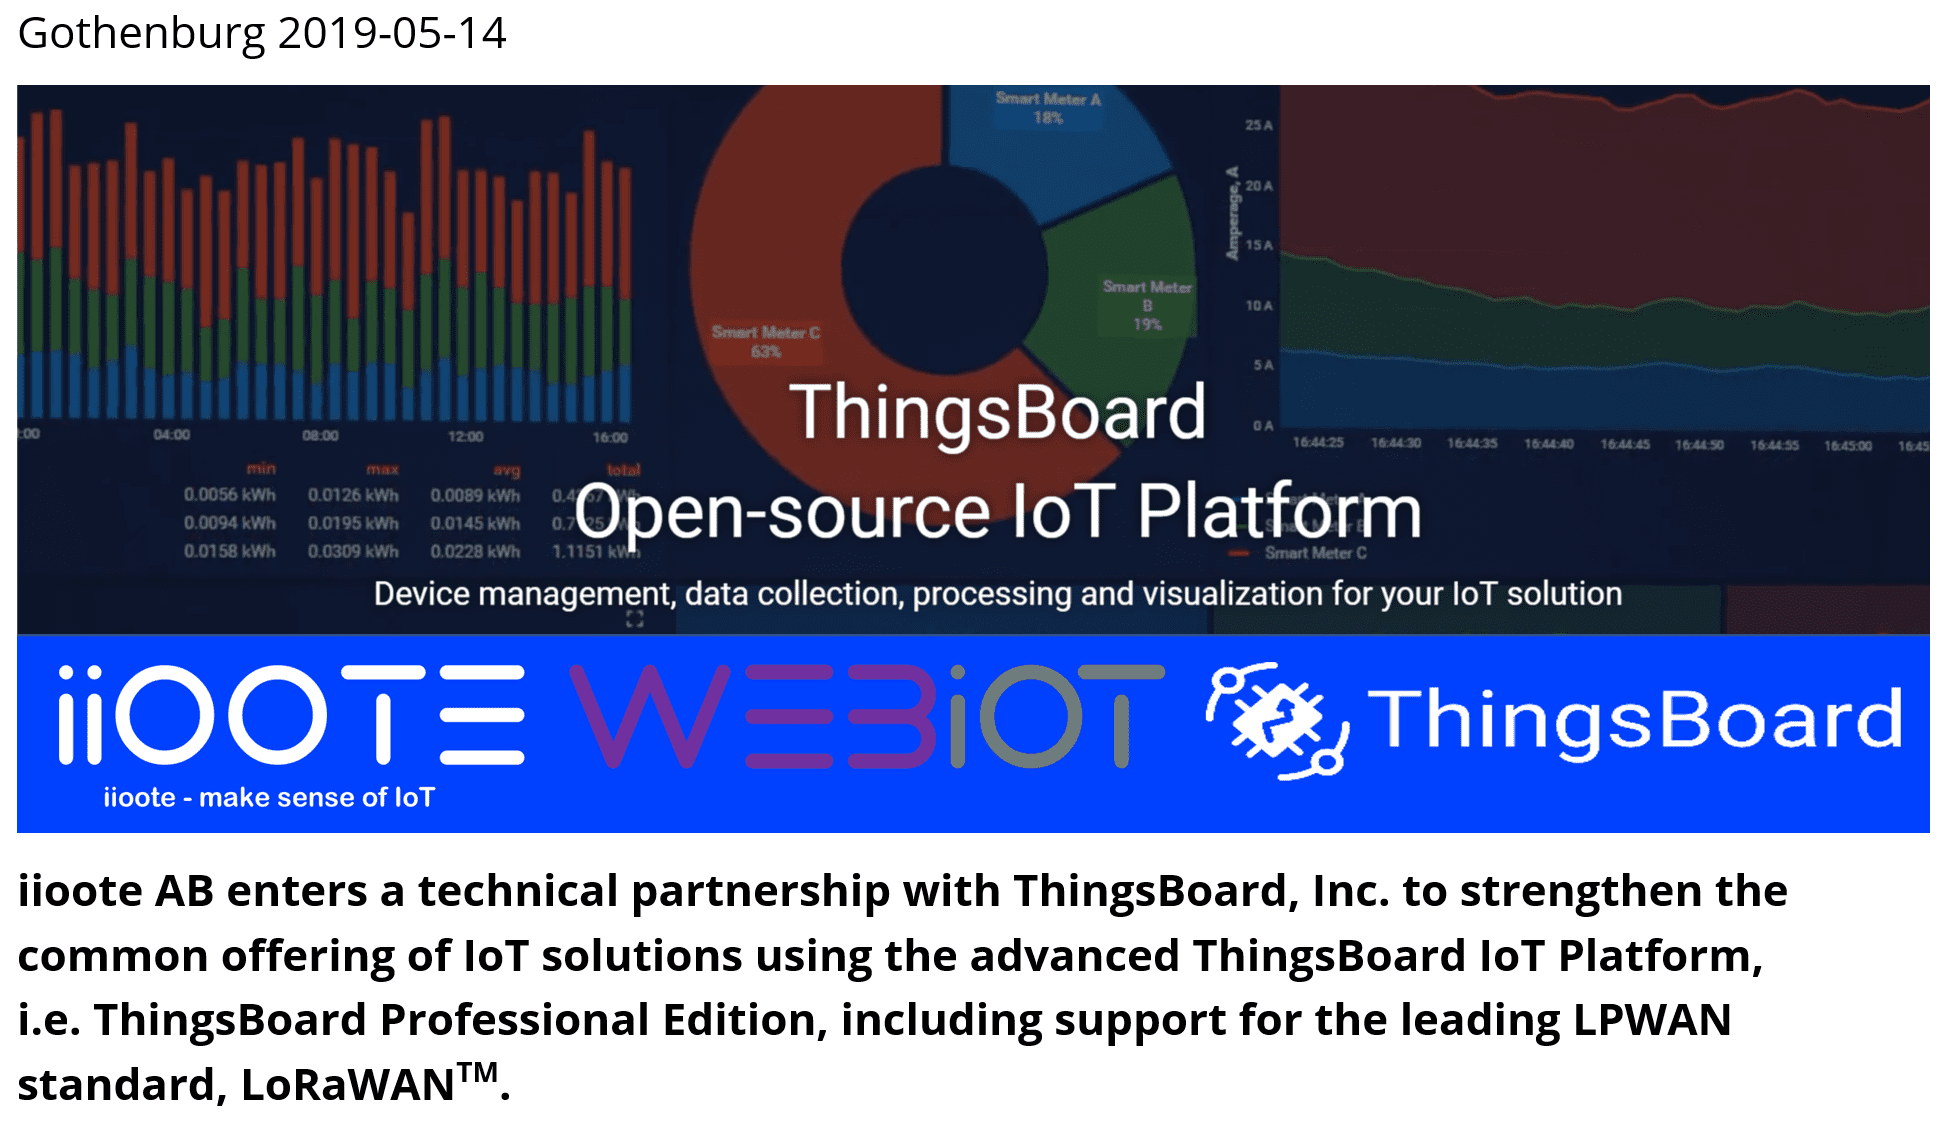 iioote and ThingsBoard announces technical partnership to reduce